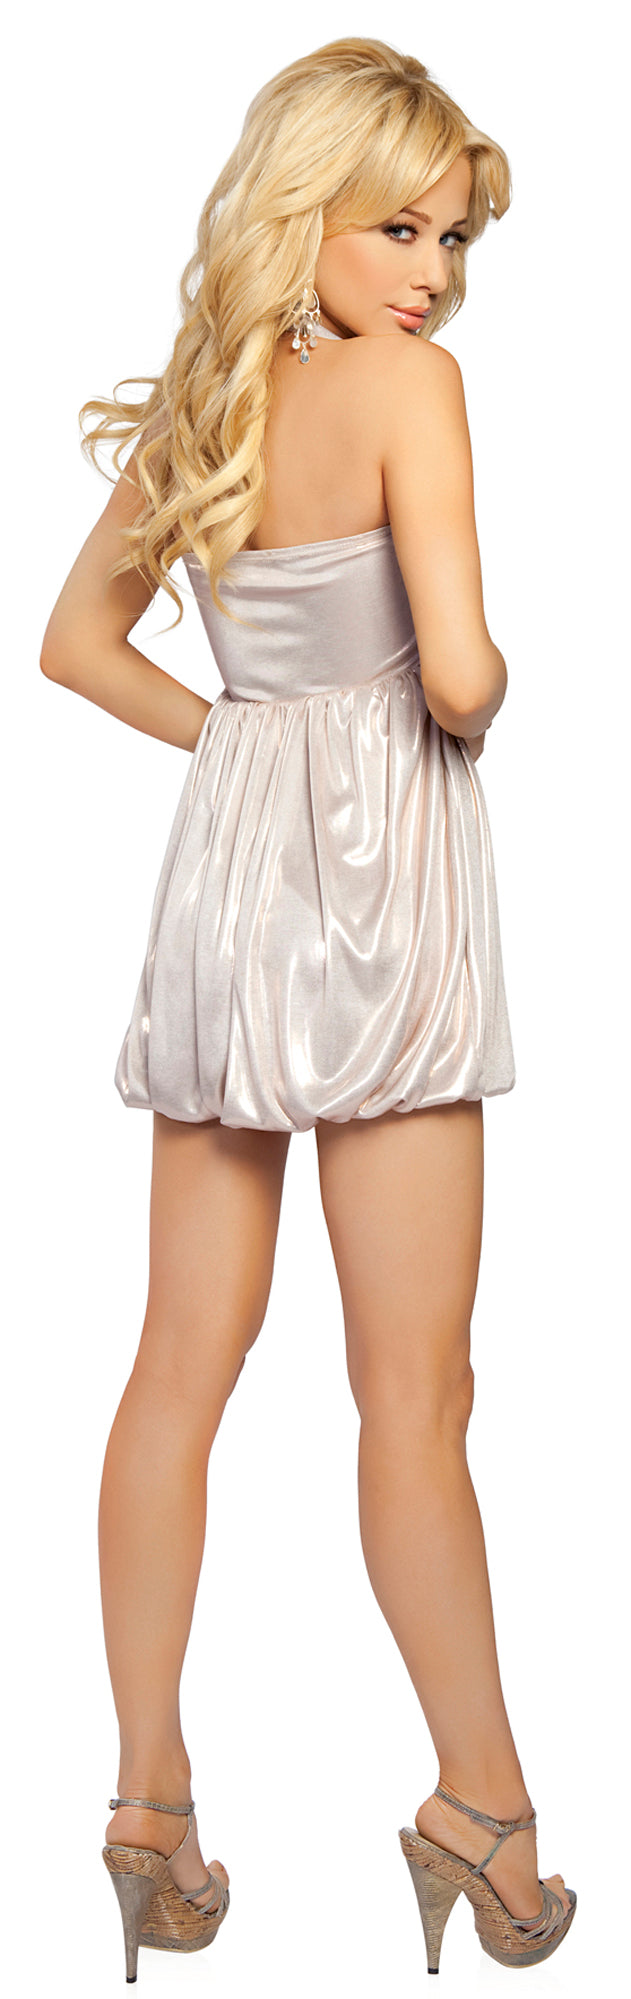 Halter Dress with Emblem Champagne Back RM2758